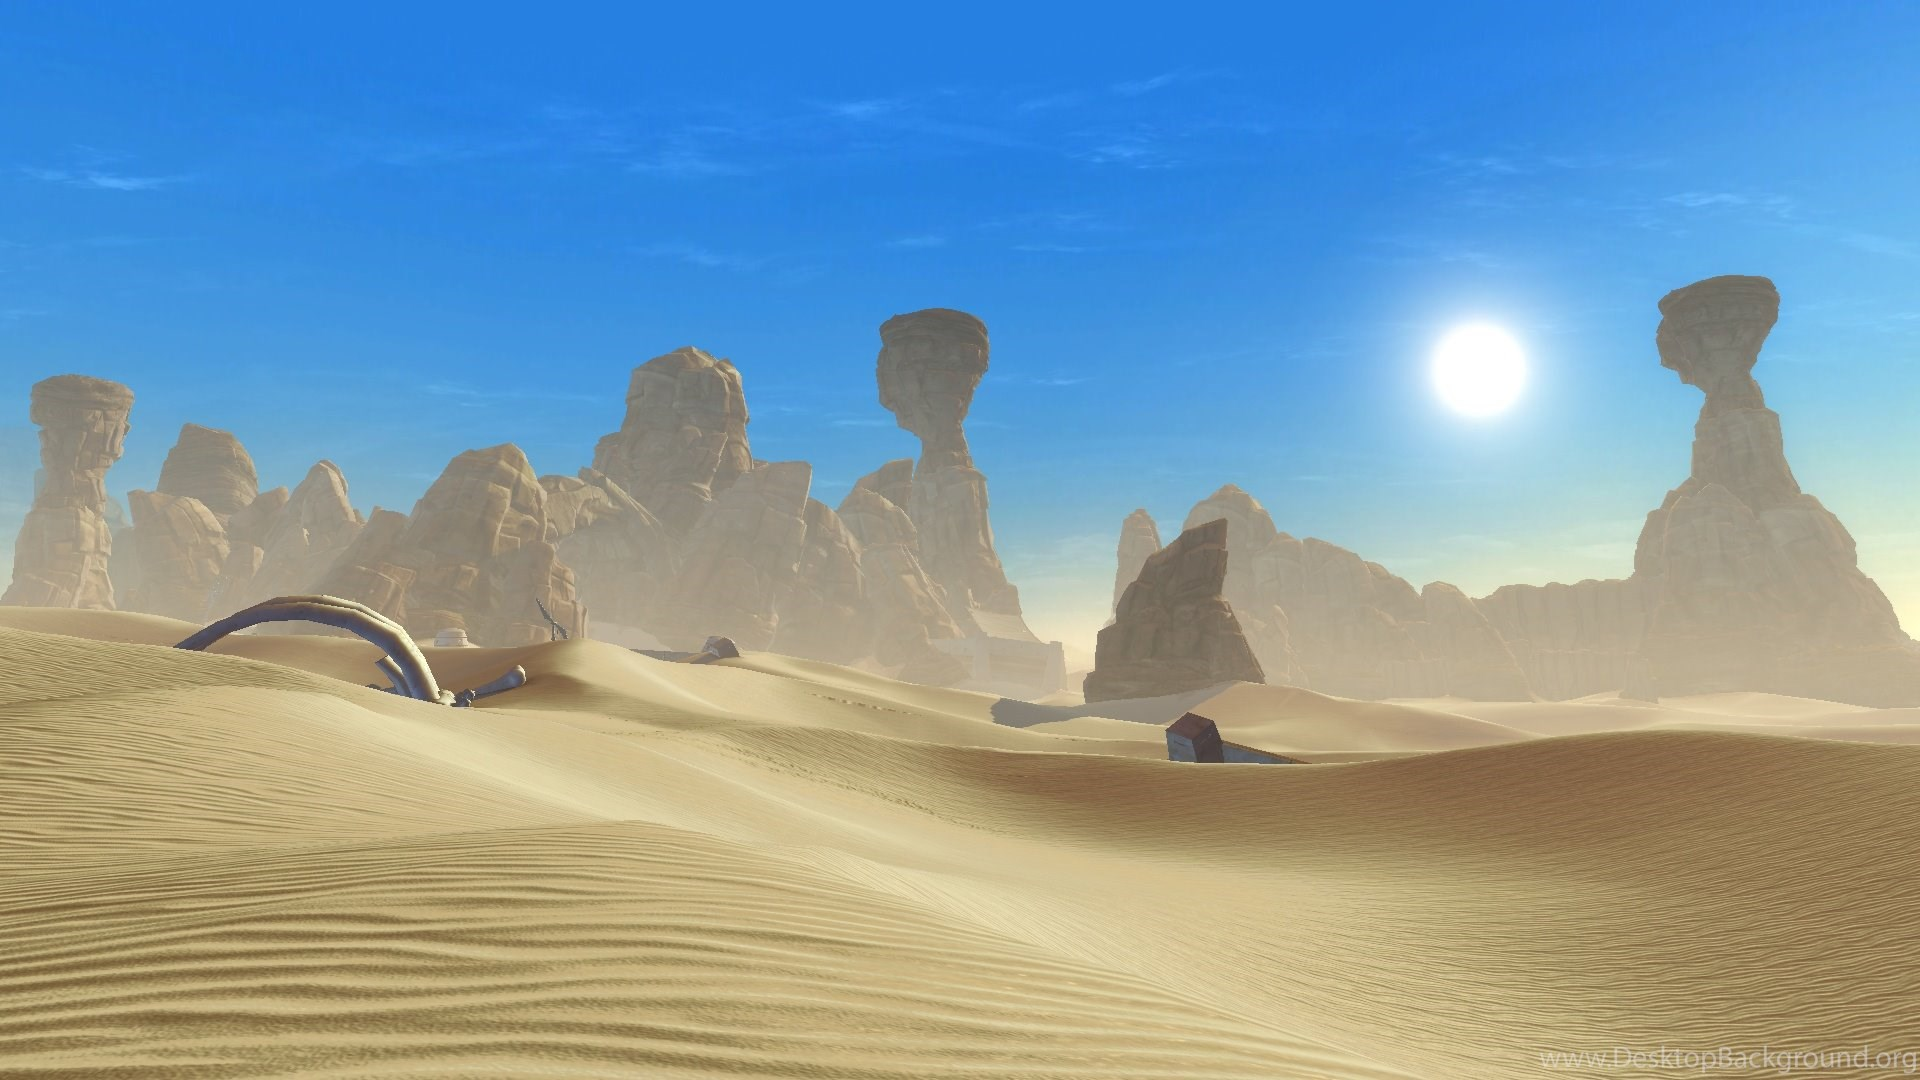 Star Wars Landscape Wallpapers B6x7m Hd Wallpapers Desktop Backgrounds Desktop Background